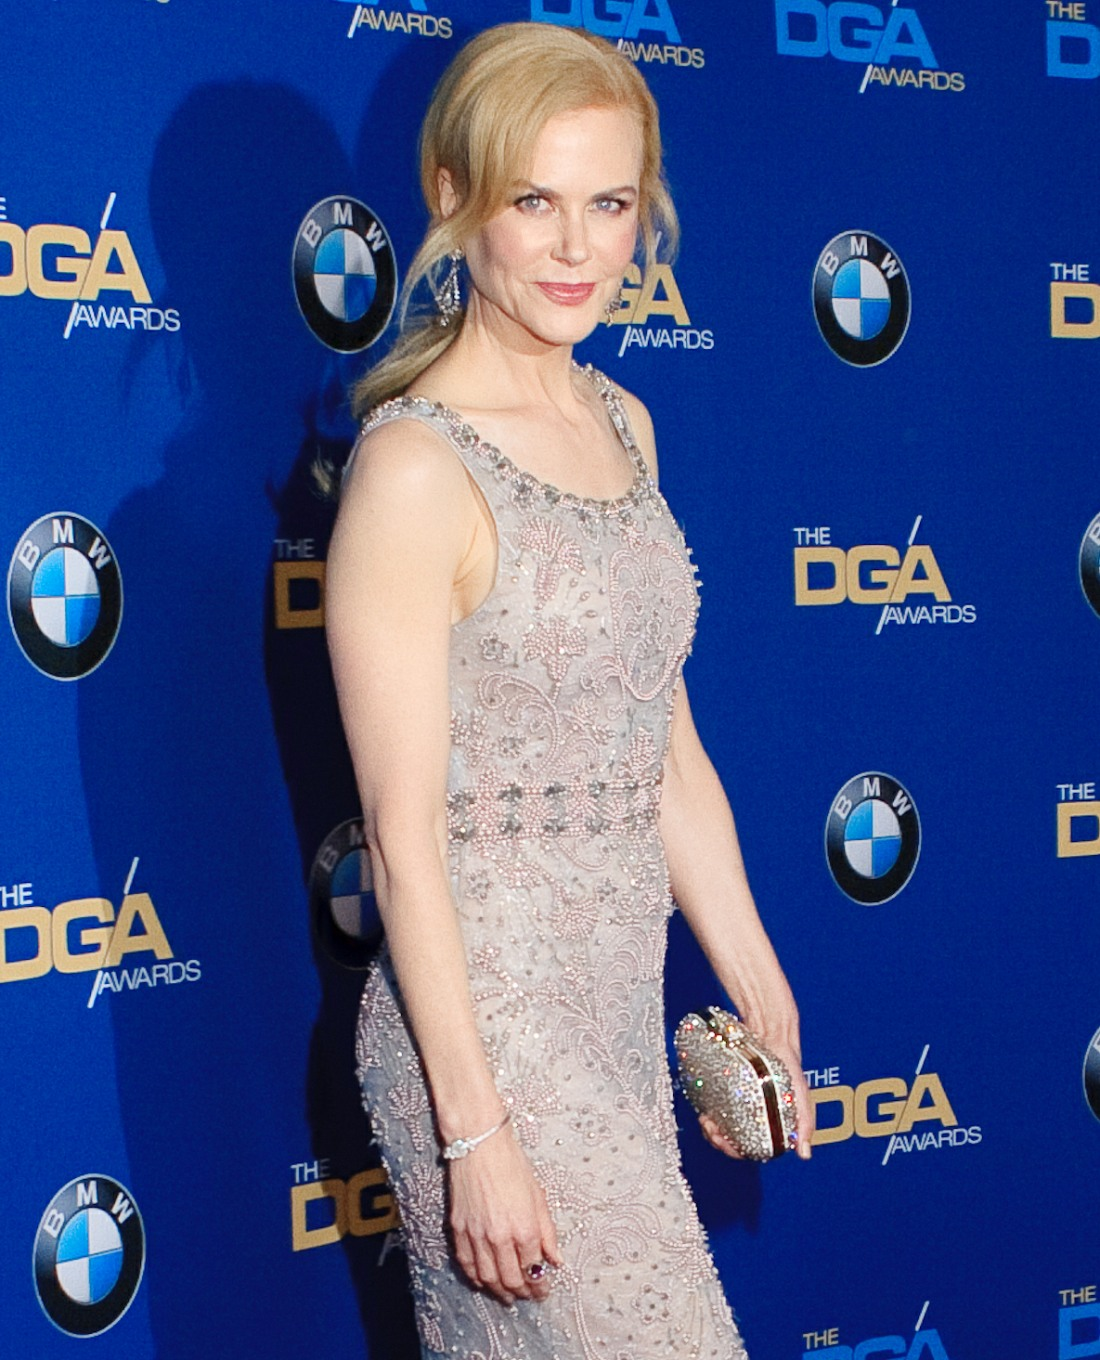 The 69th Annual Director Guild Awards - Arrivals  bitchy | Nicole Kidman in beaded Marchesa on the DGA Awards: boring or lovely? wenn30855625